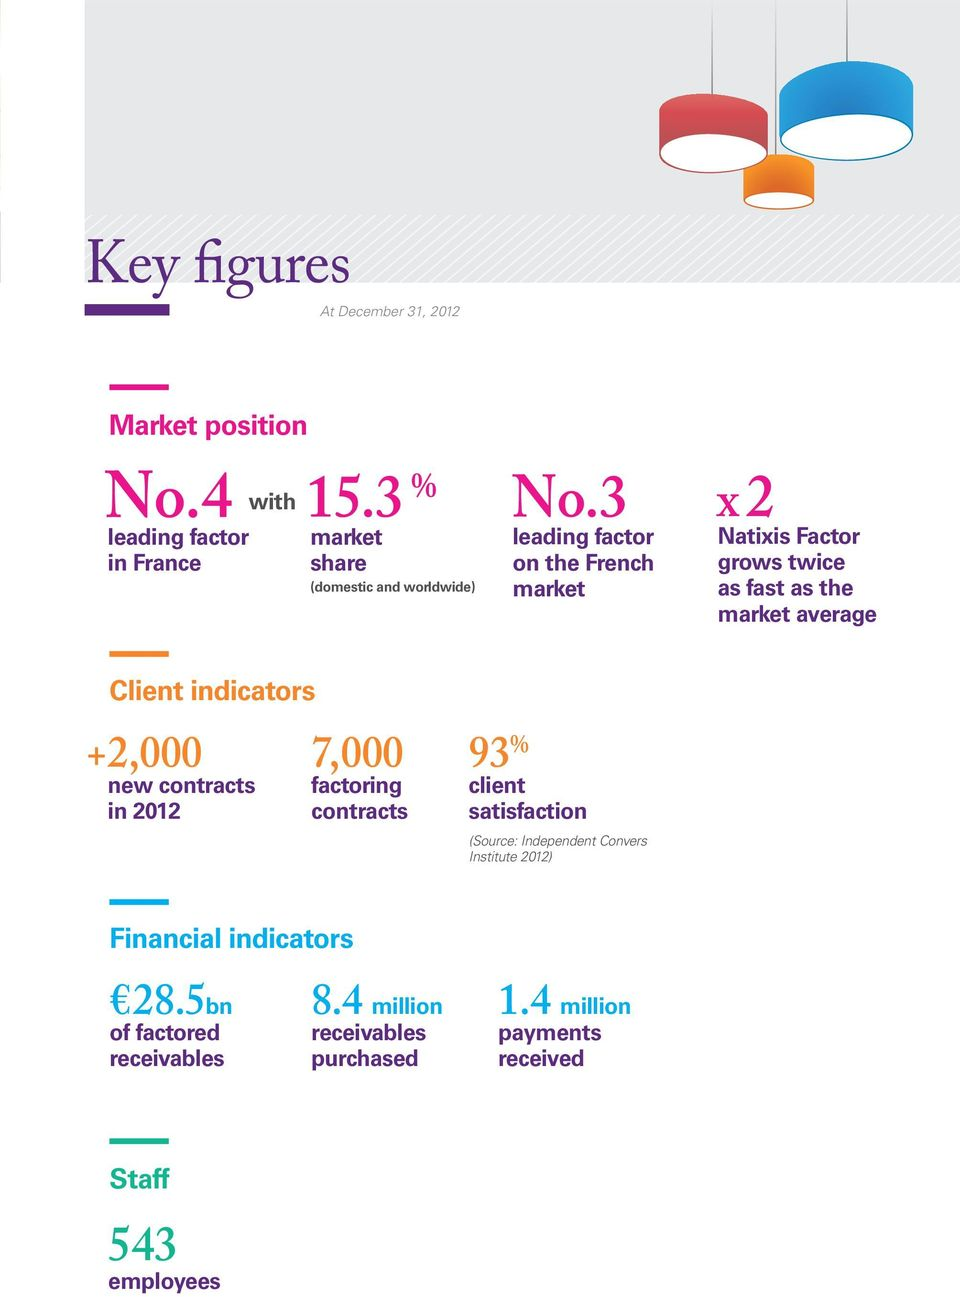 3 leading factor on the French market x 2 Natixis Factor grows twice as fast as the market average Client indicators + 2,000